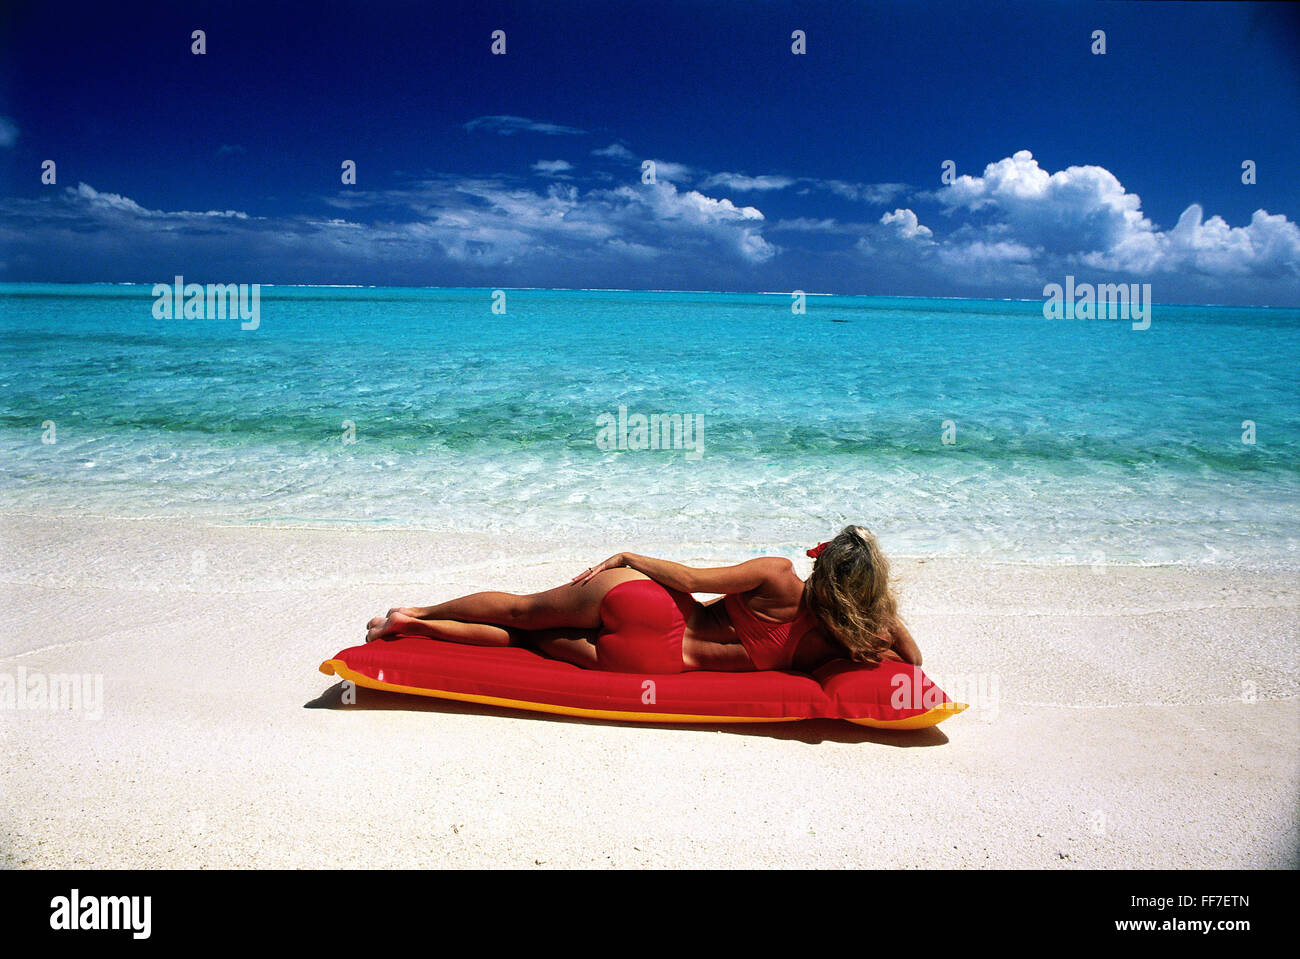 leisure time, bathing, woman lying on red air mattress on the beach, circa 1988, Additional-Rights-Clearences-NA - Stock Image